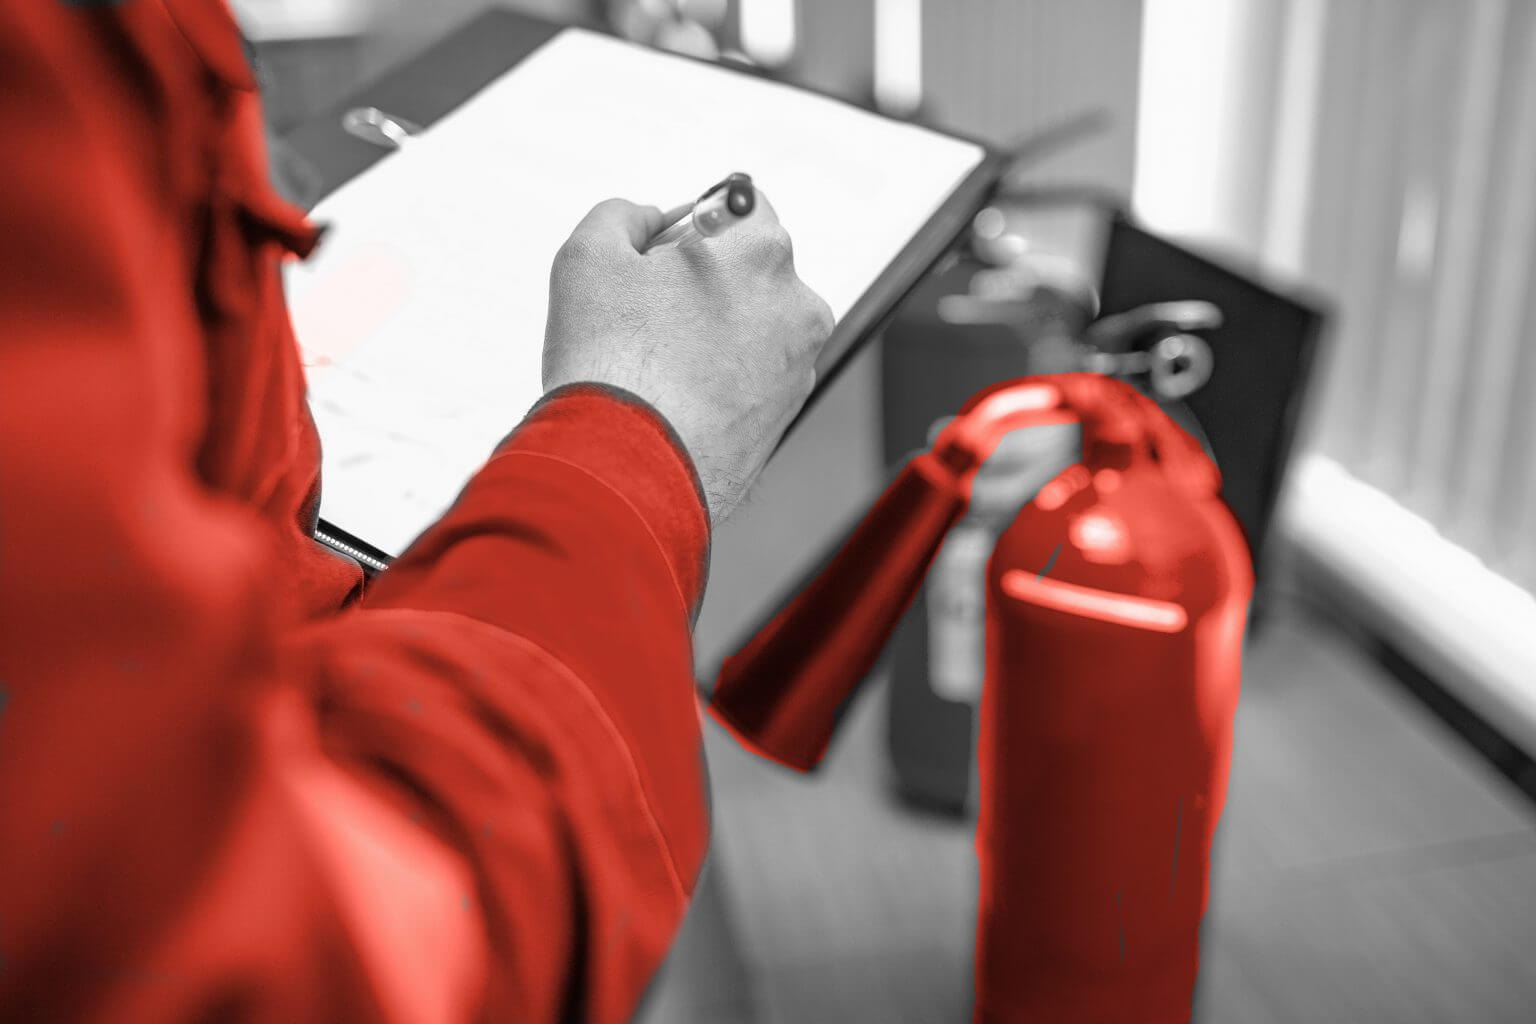 Operator inspecting a fire extinguisher